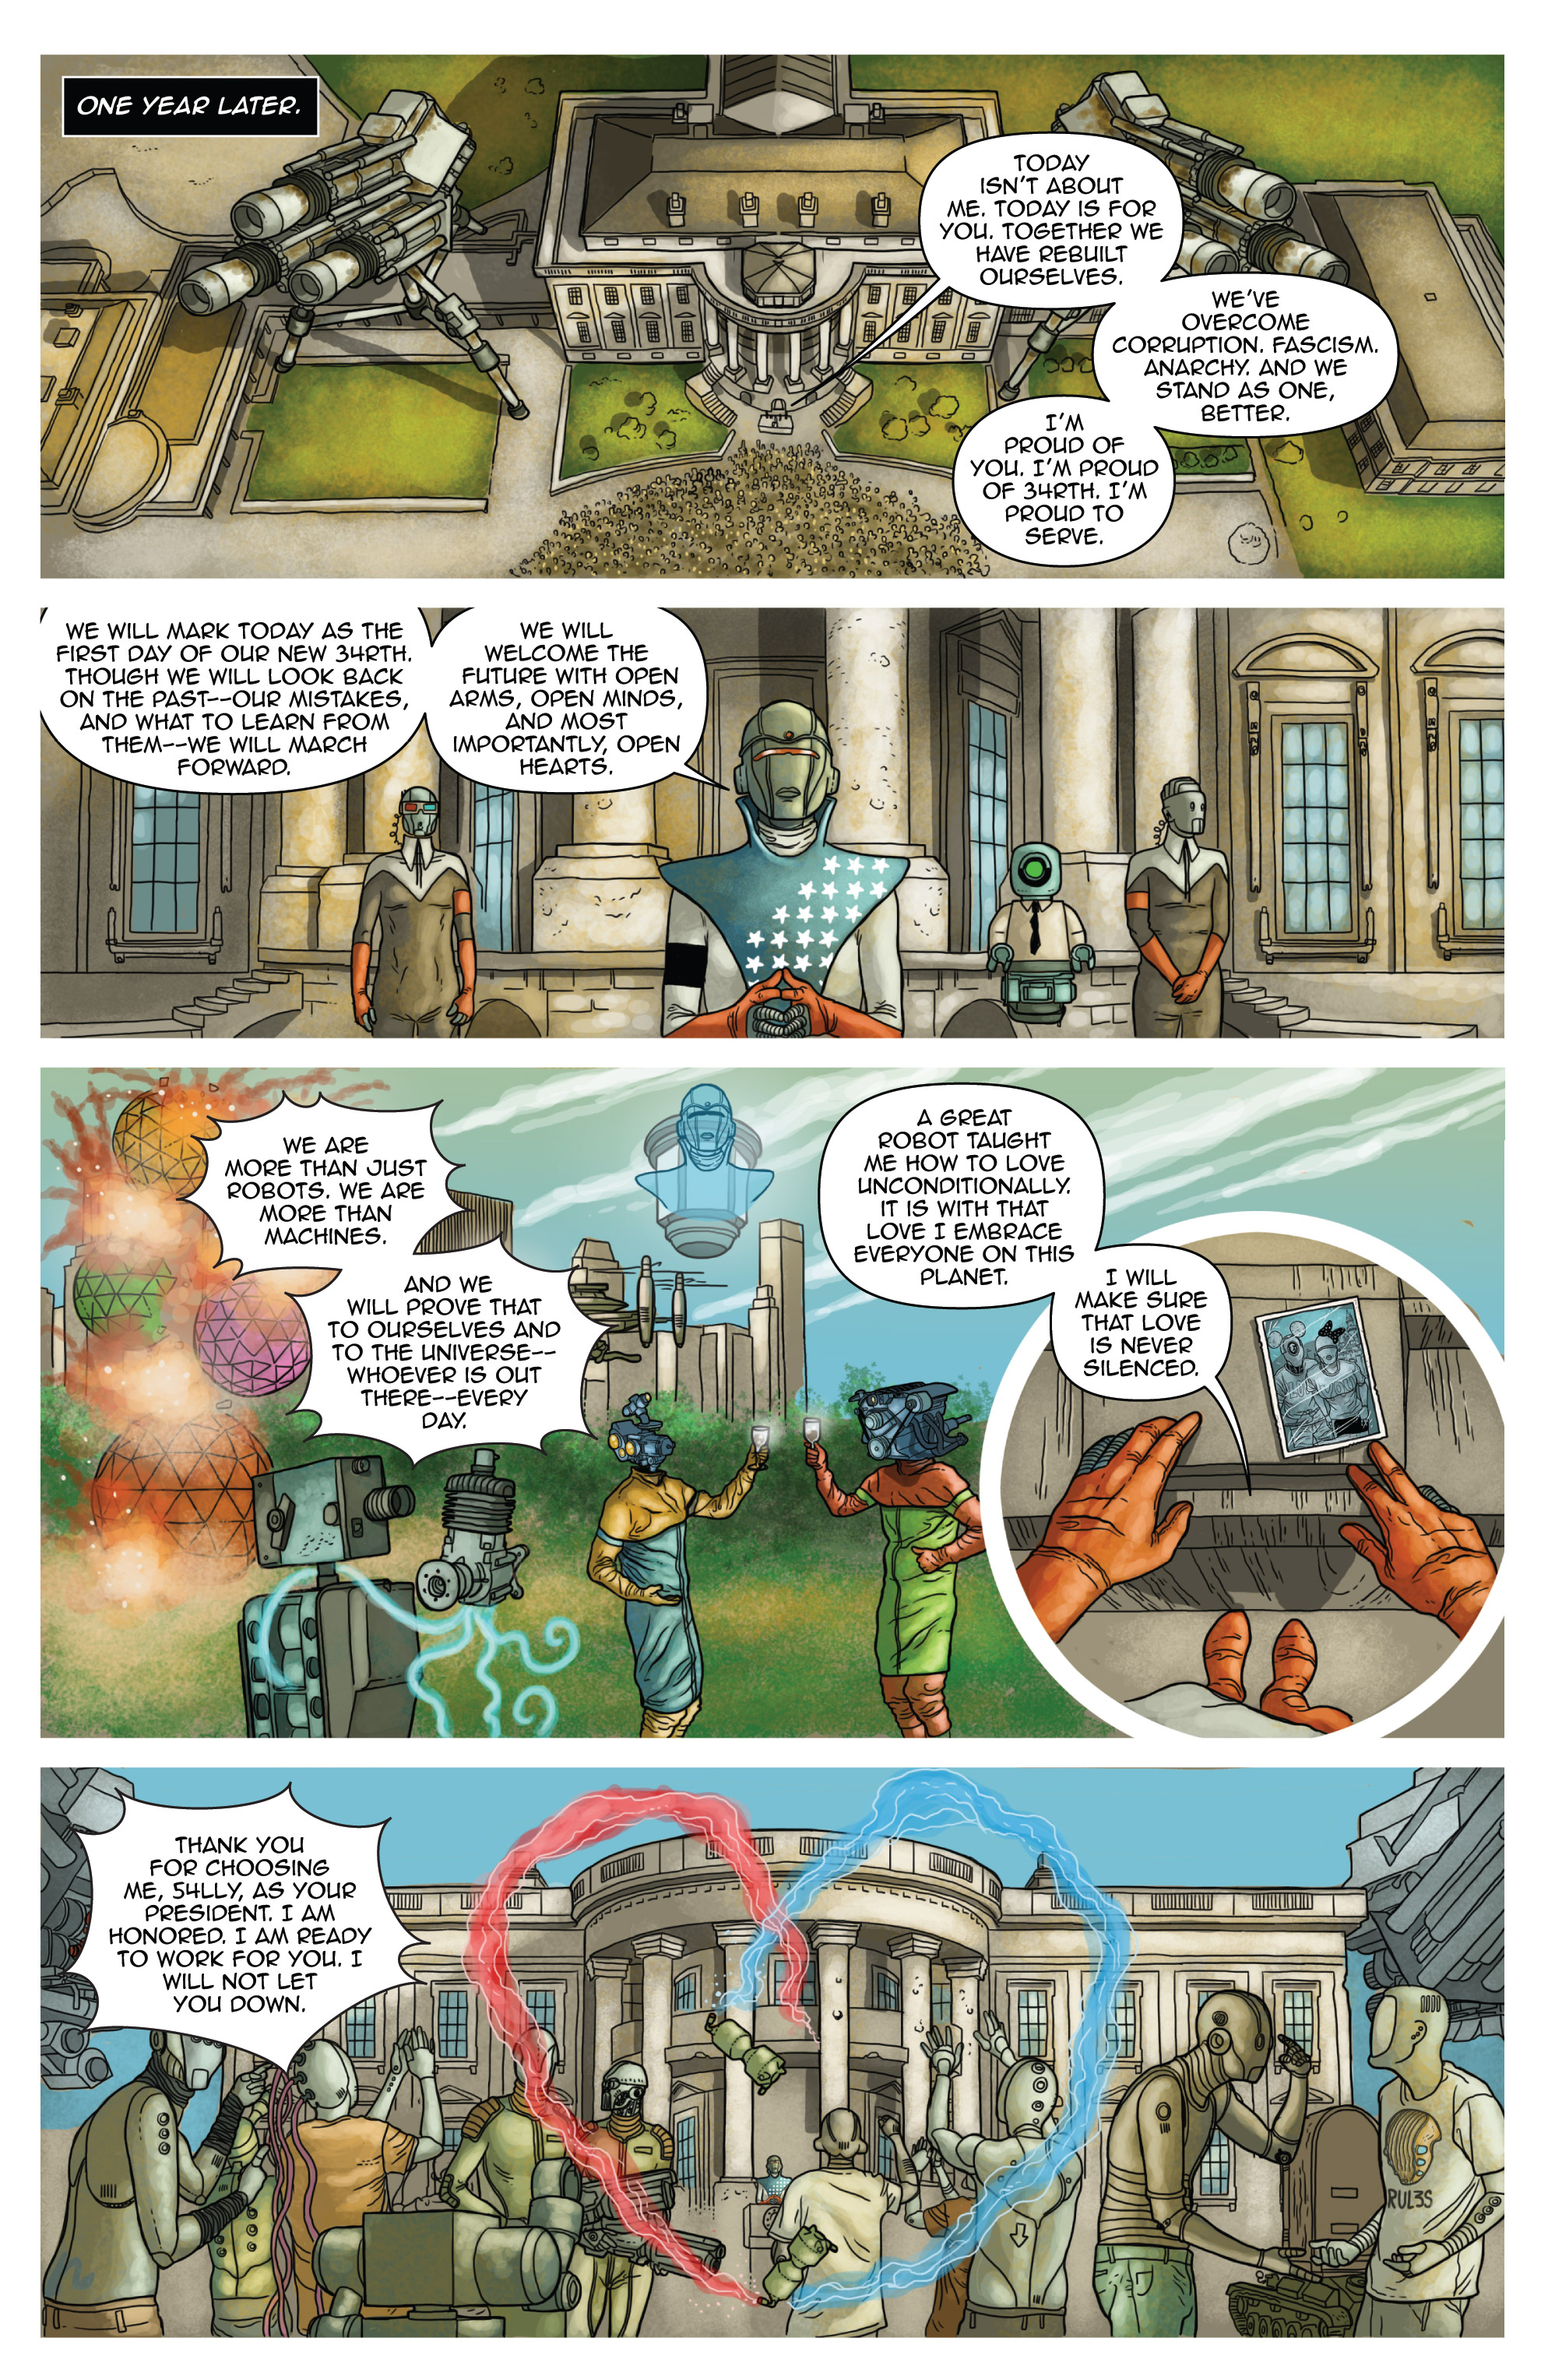 Read online D4VEocracy comic -  Issue #4 - 23